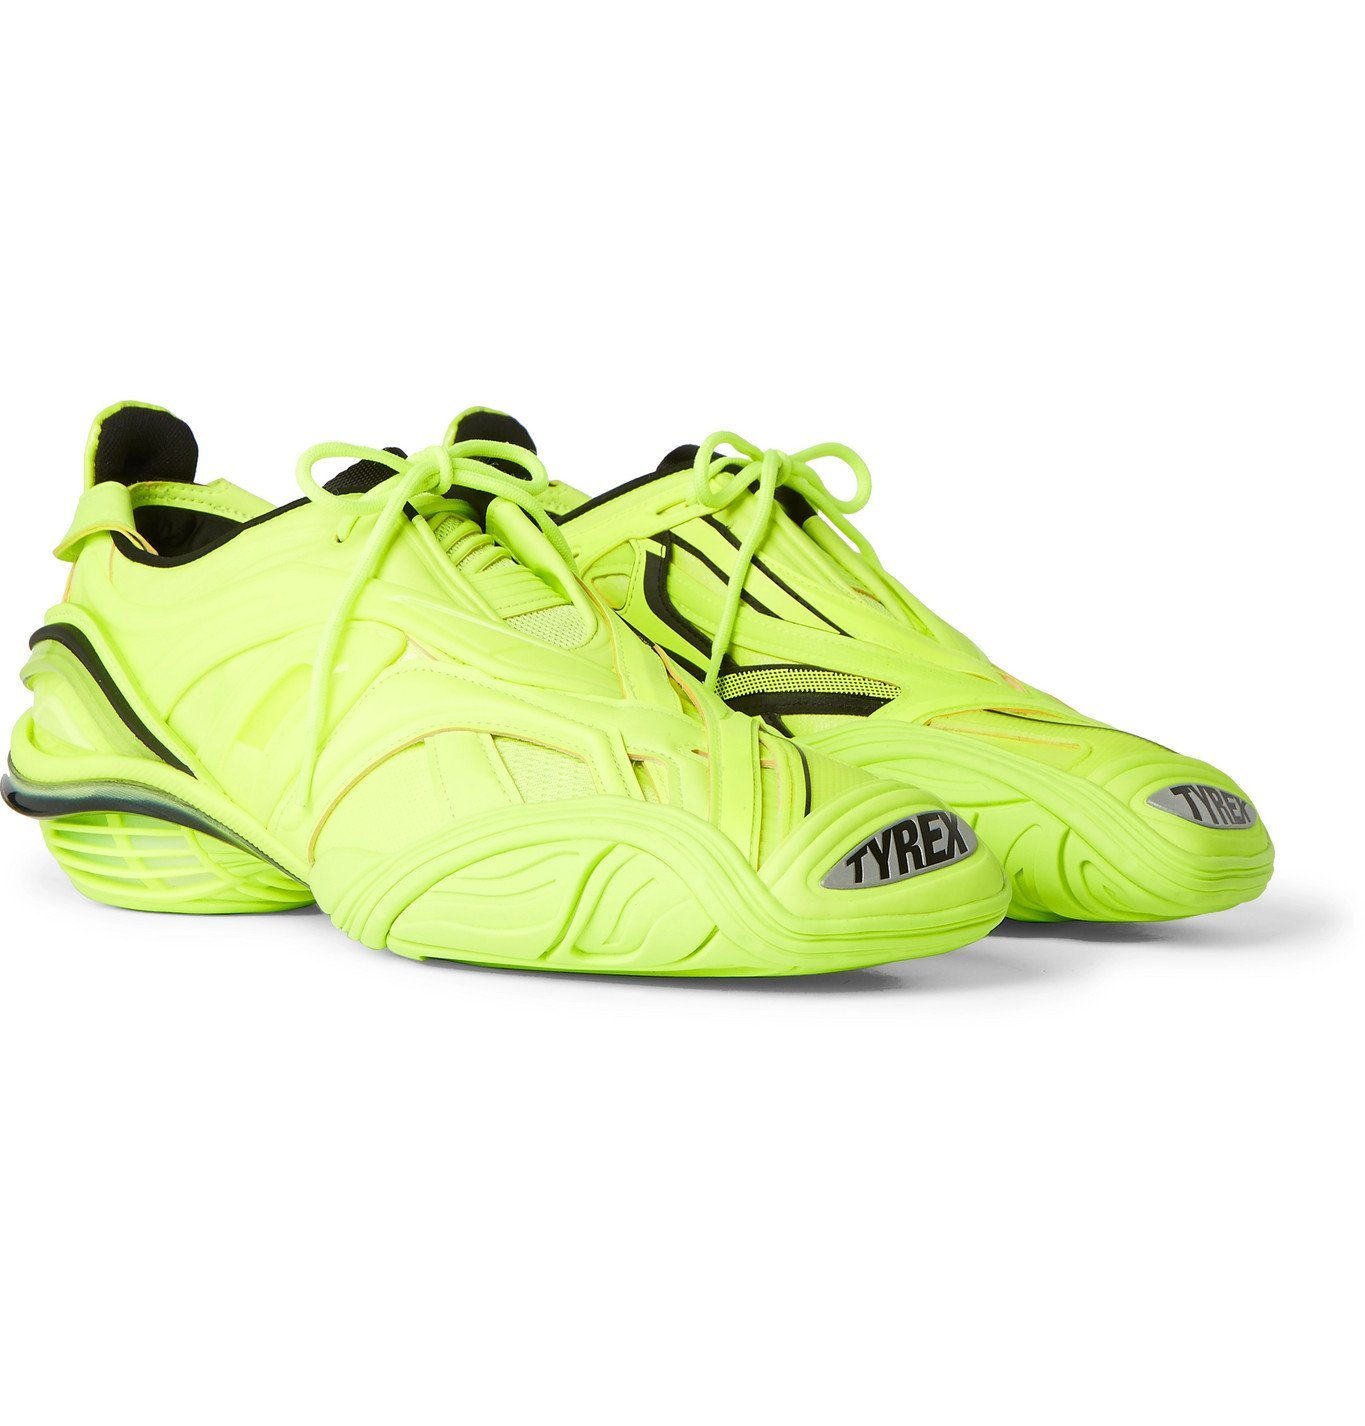 Photo: Balenciaga - Tyrex Rubber, Mesh and Faux Leather Sneakers - Yellow